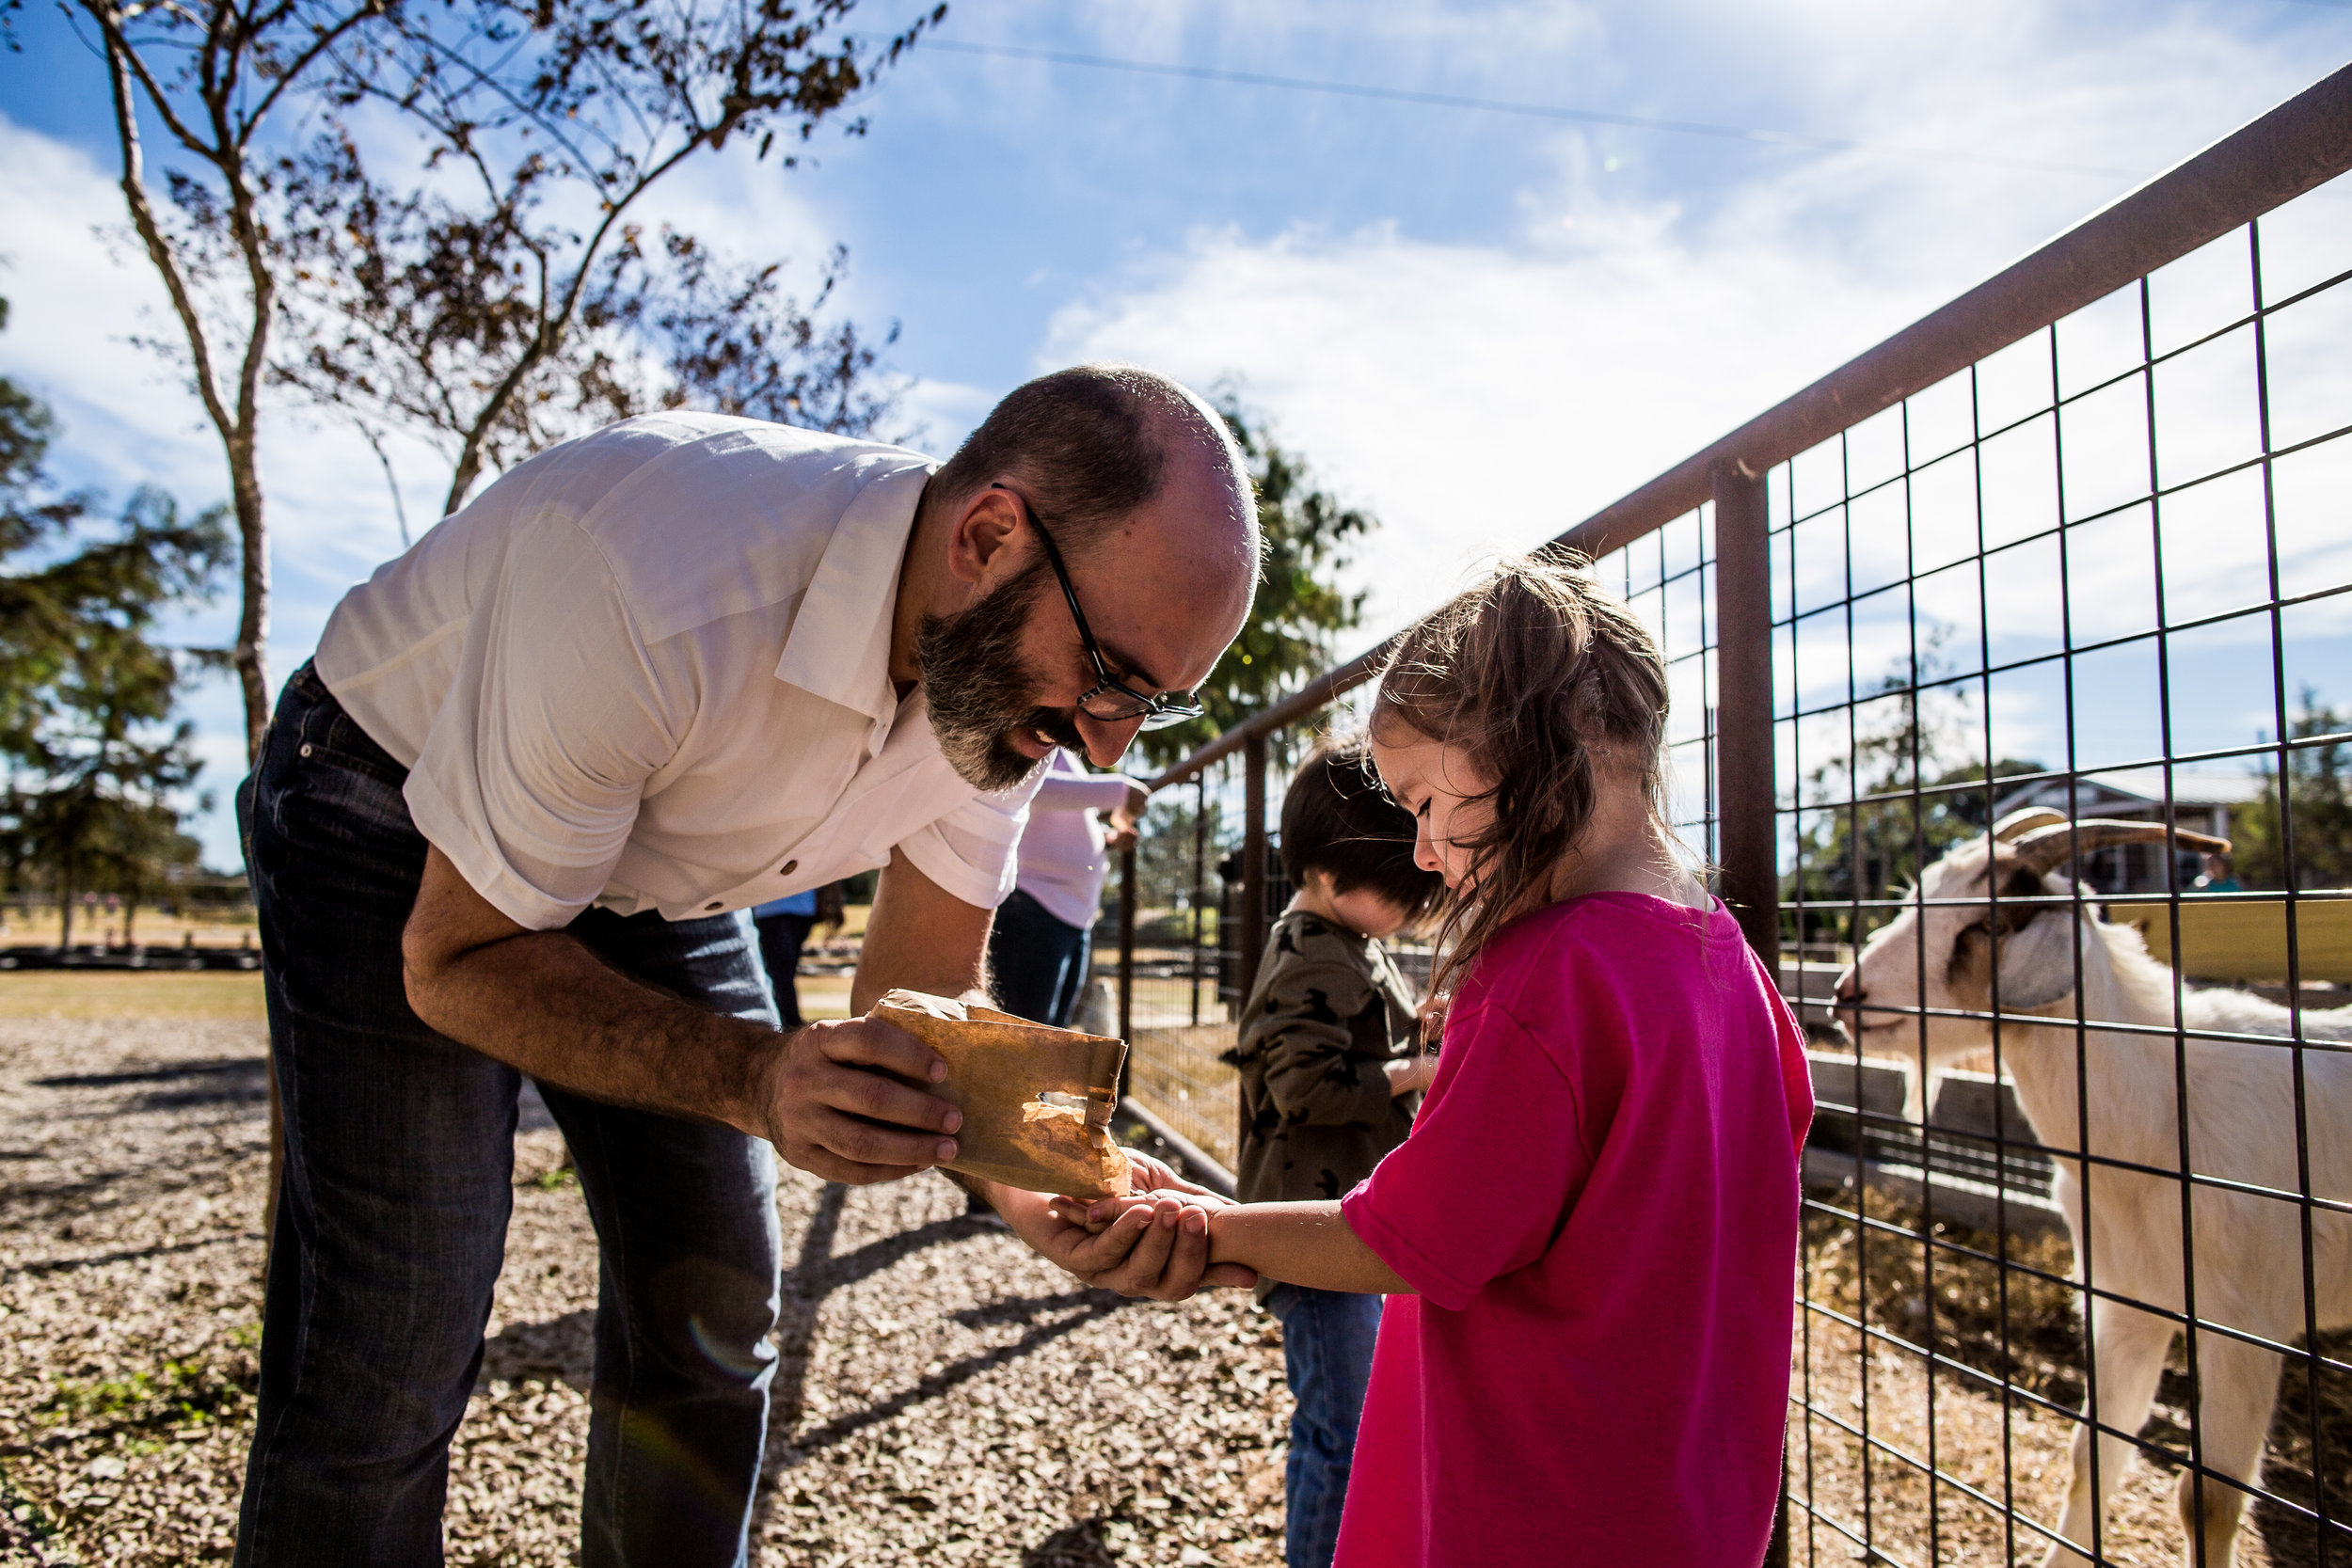 Feeding the goats at Devine Acres Farm. Devine, TX. Photo by Norma Hess Photography rgvbirthphotography.com